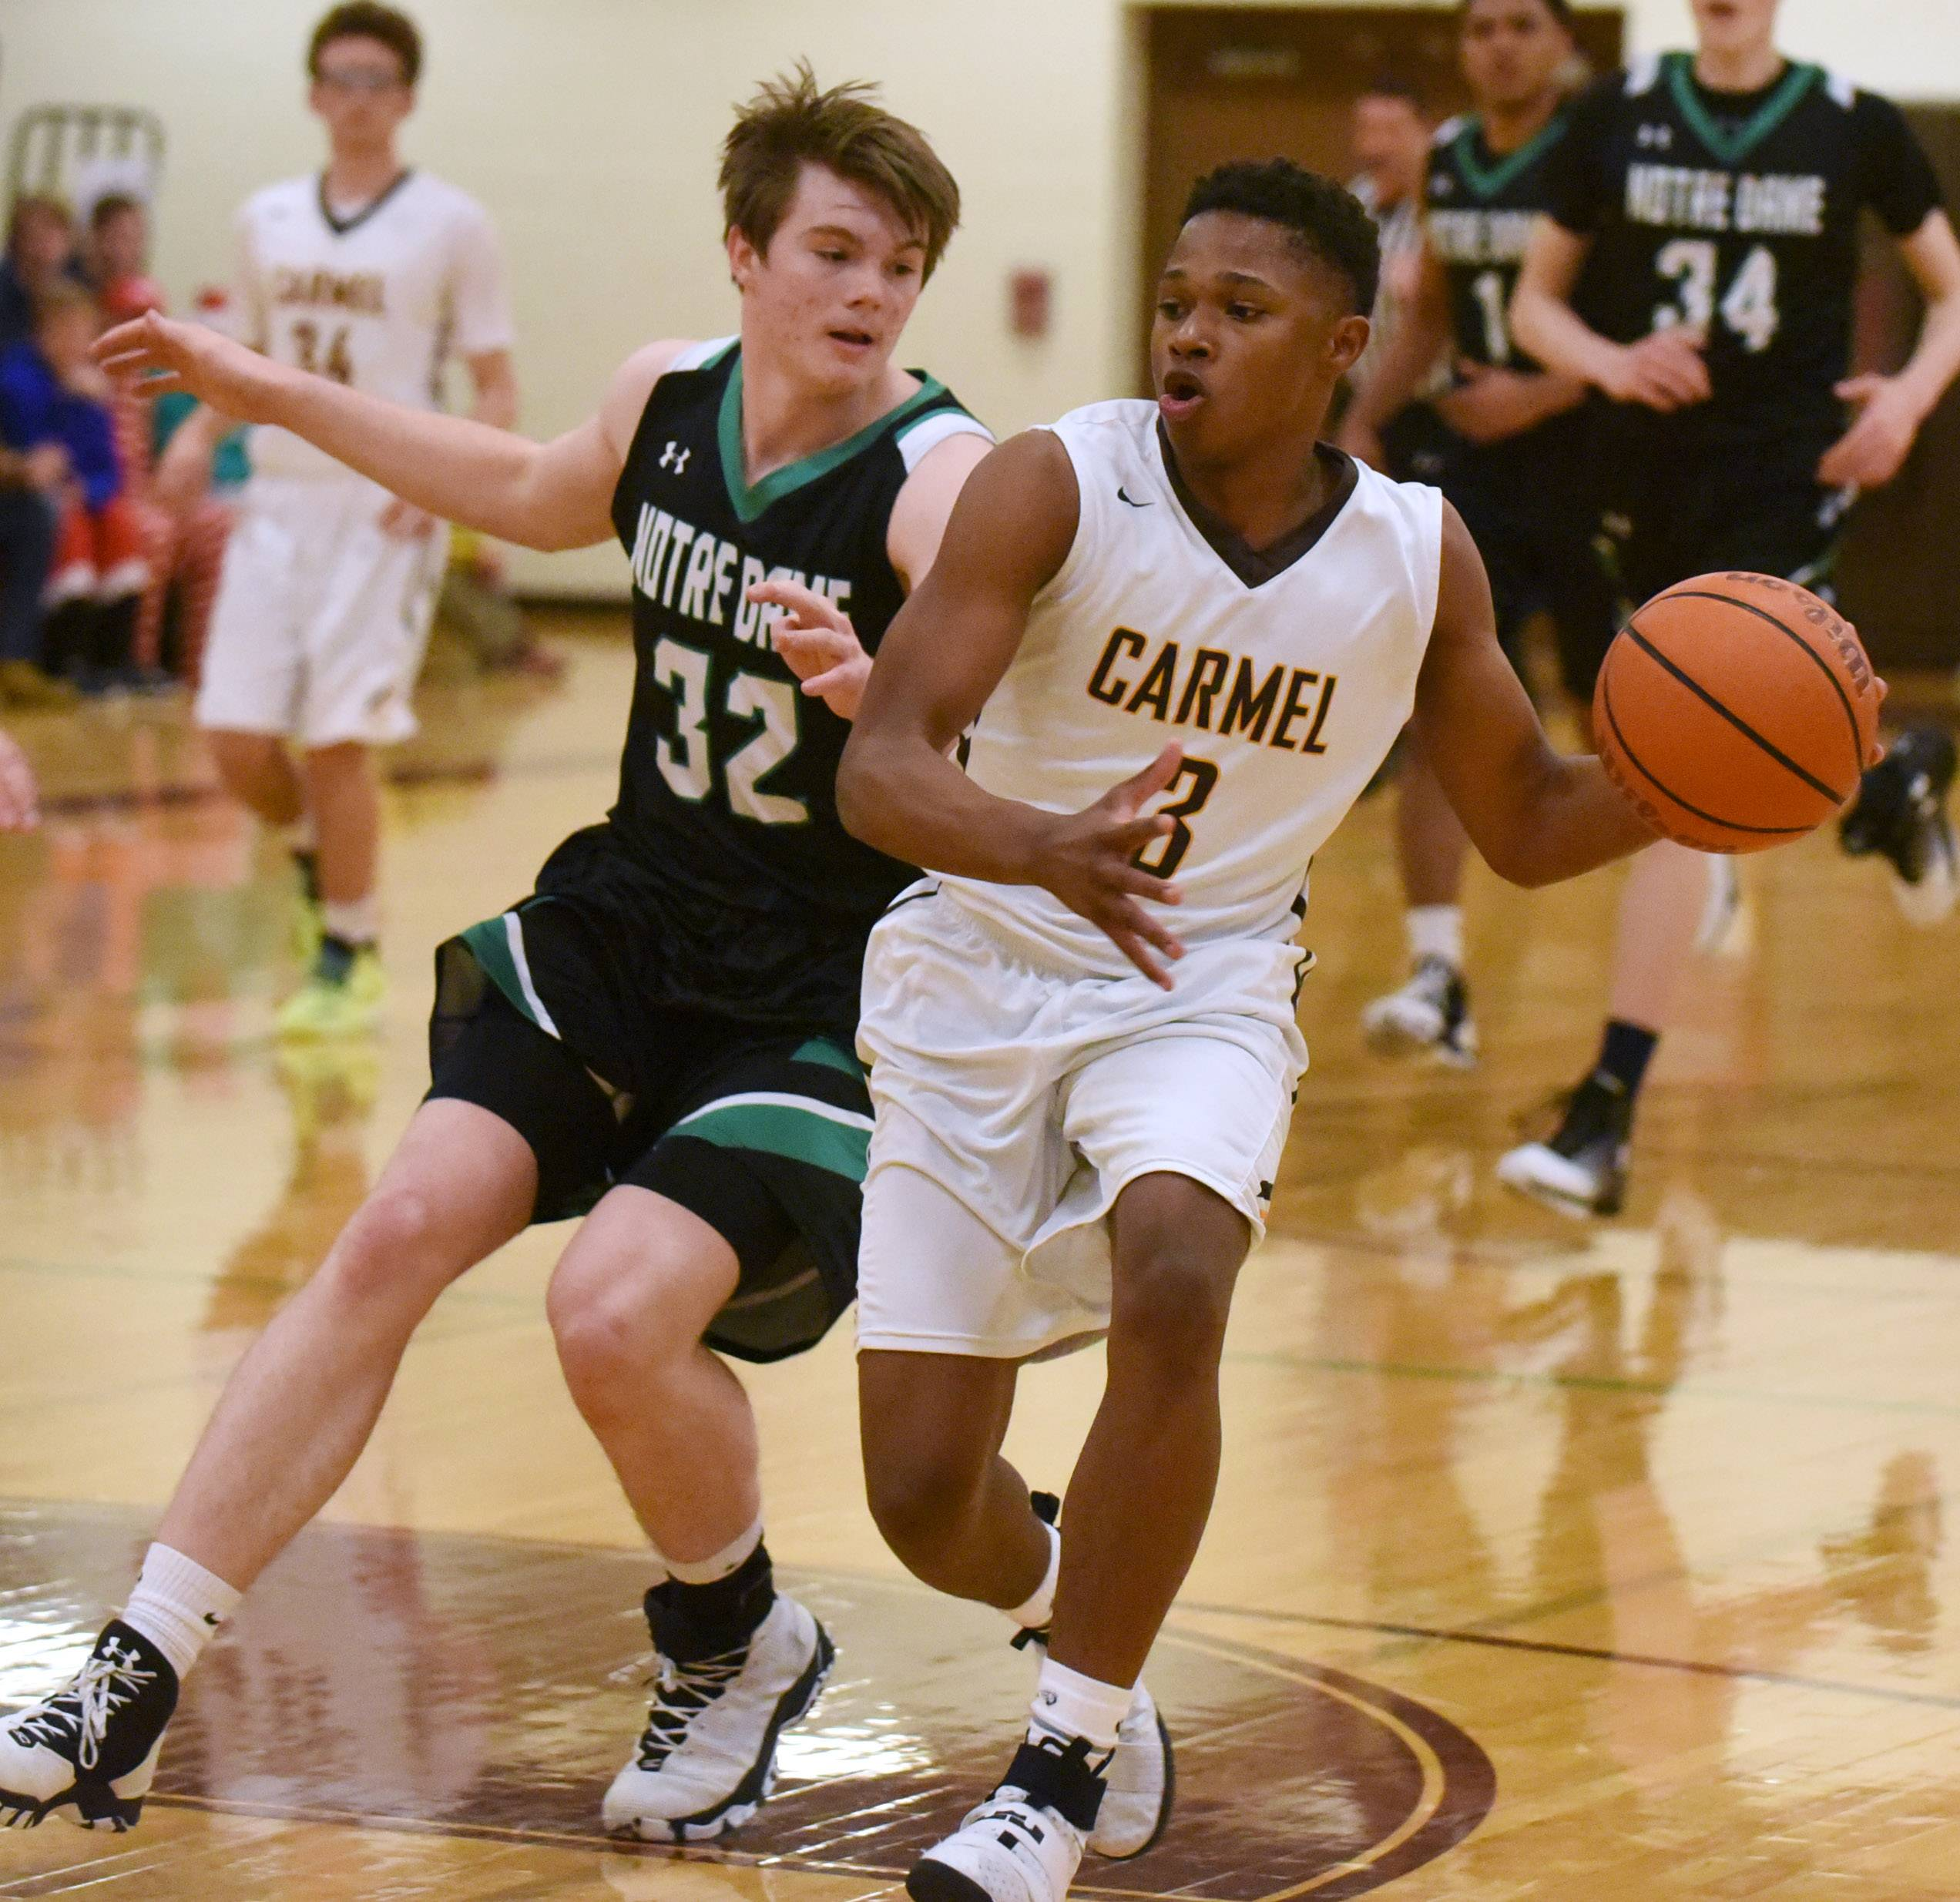 Carmel's Zion Kilpatrick (3) heads to the basket past Notre Dame's Chris Heinichen on Friday in Mundelein.